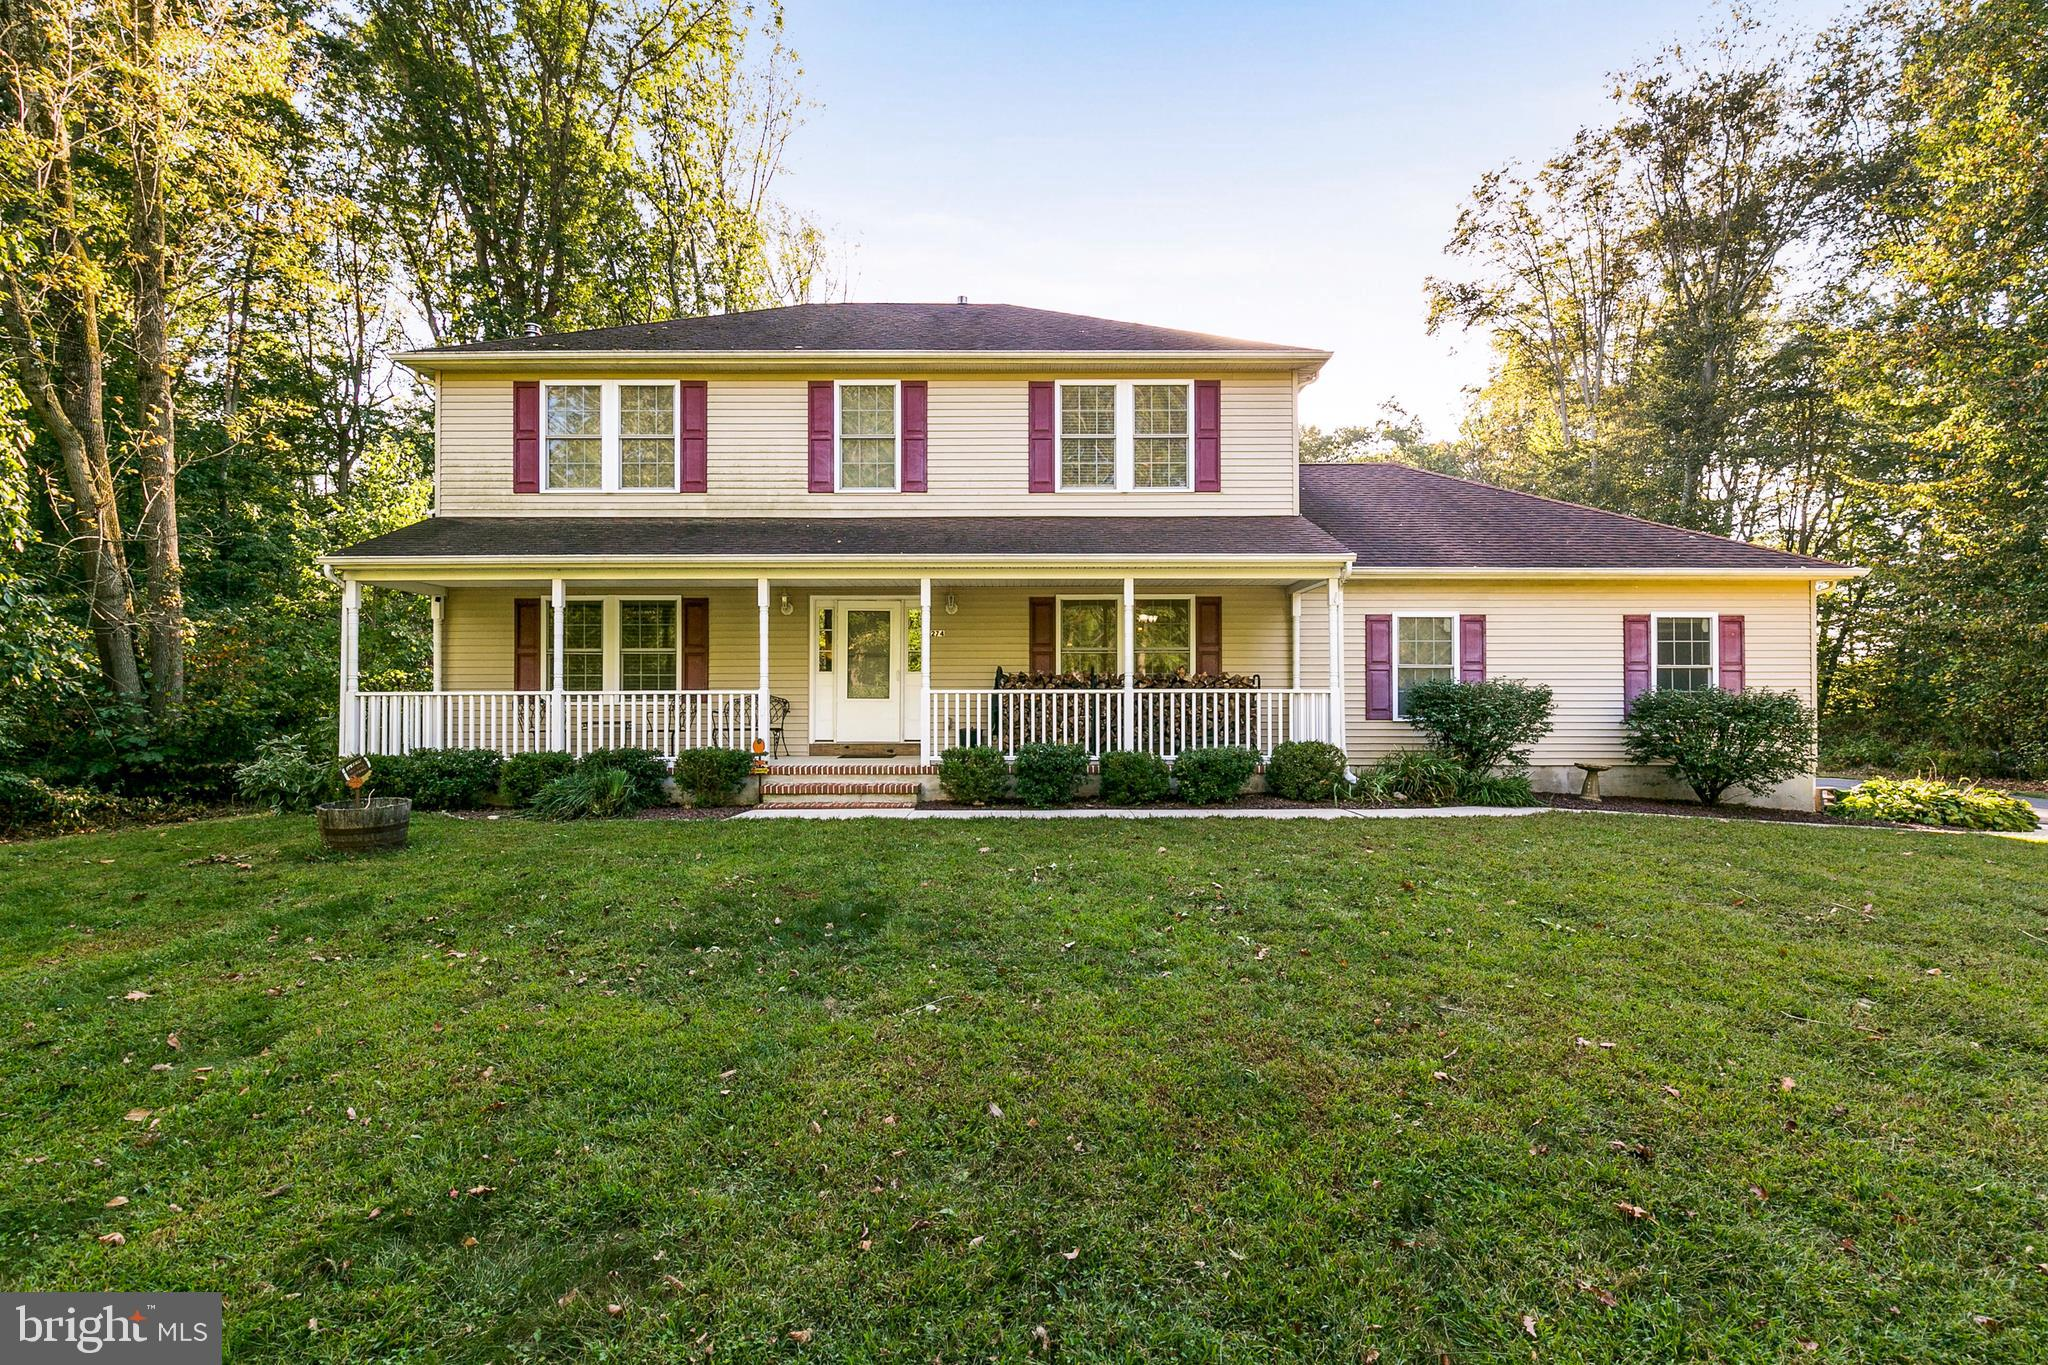 274 CHESTERFIELD JACOBSTOWN ROAD, WRIGHTSTOWN, NJ 08562